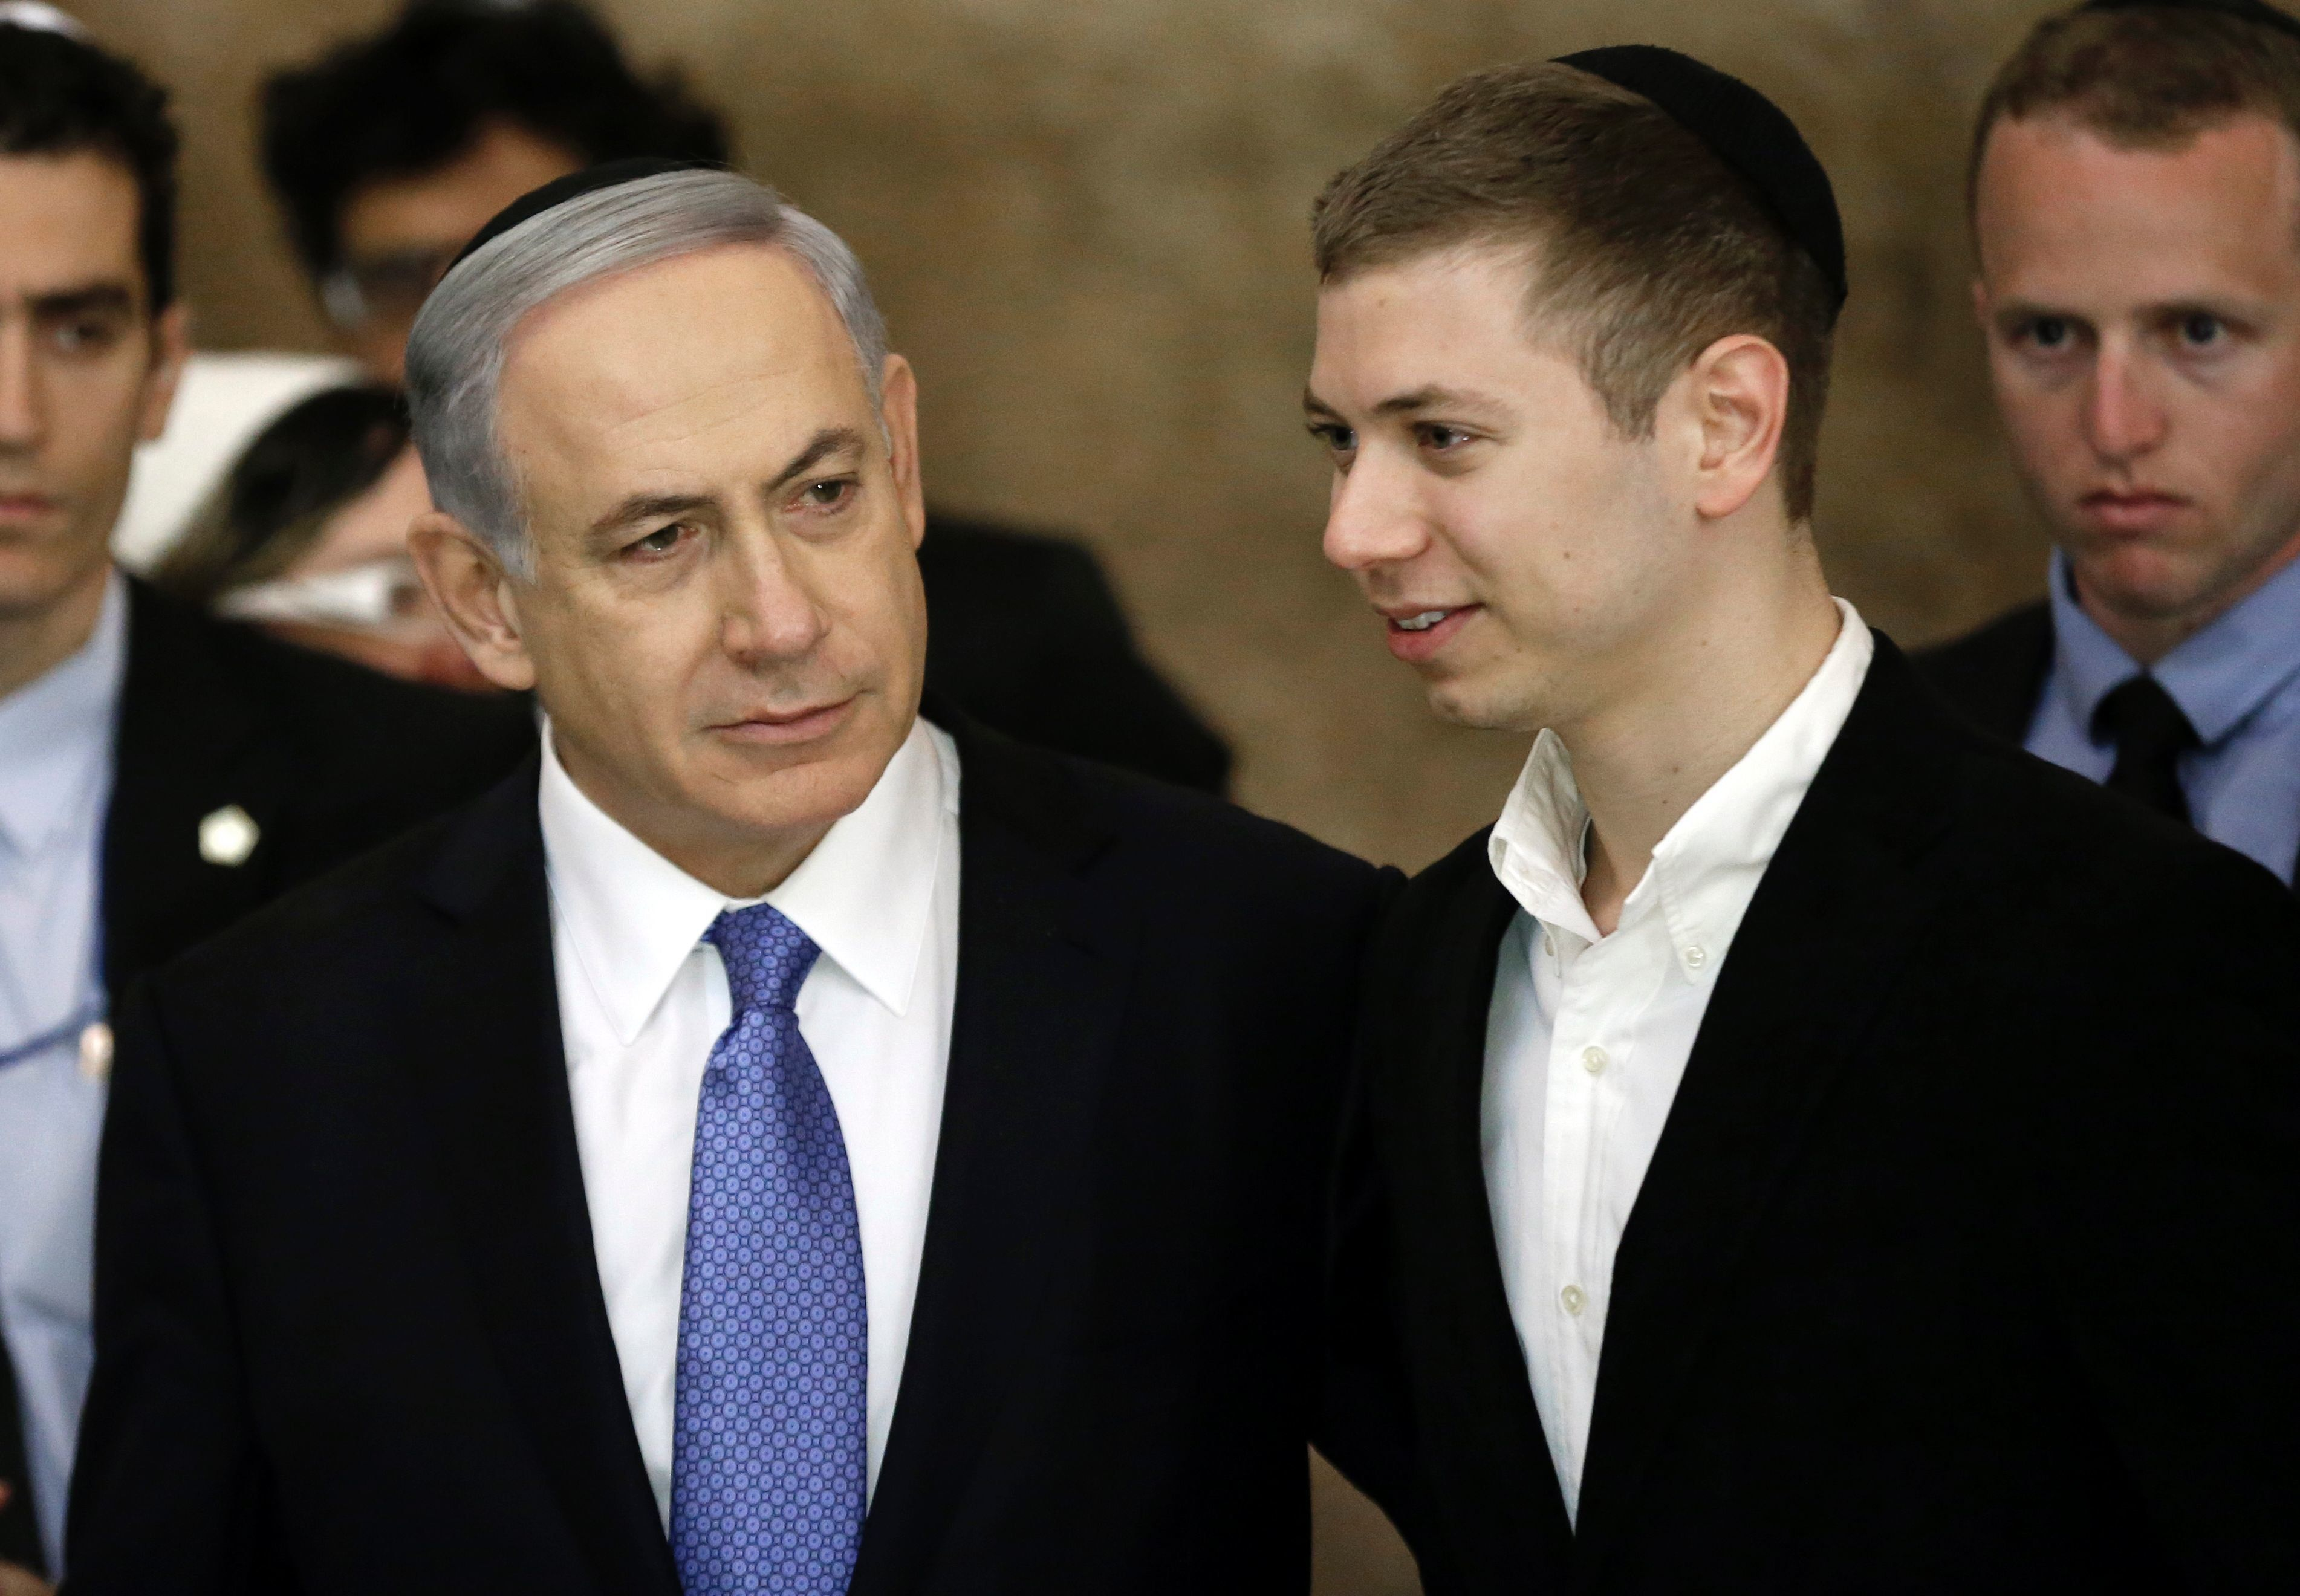 Israeli PM's Son Says Leftist 'Thugs' Are More Dangerous Than Neo